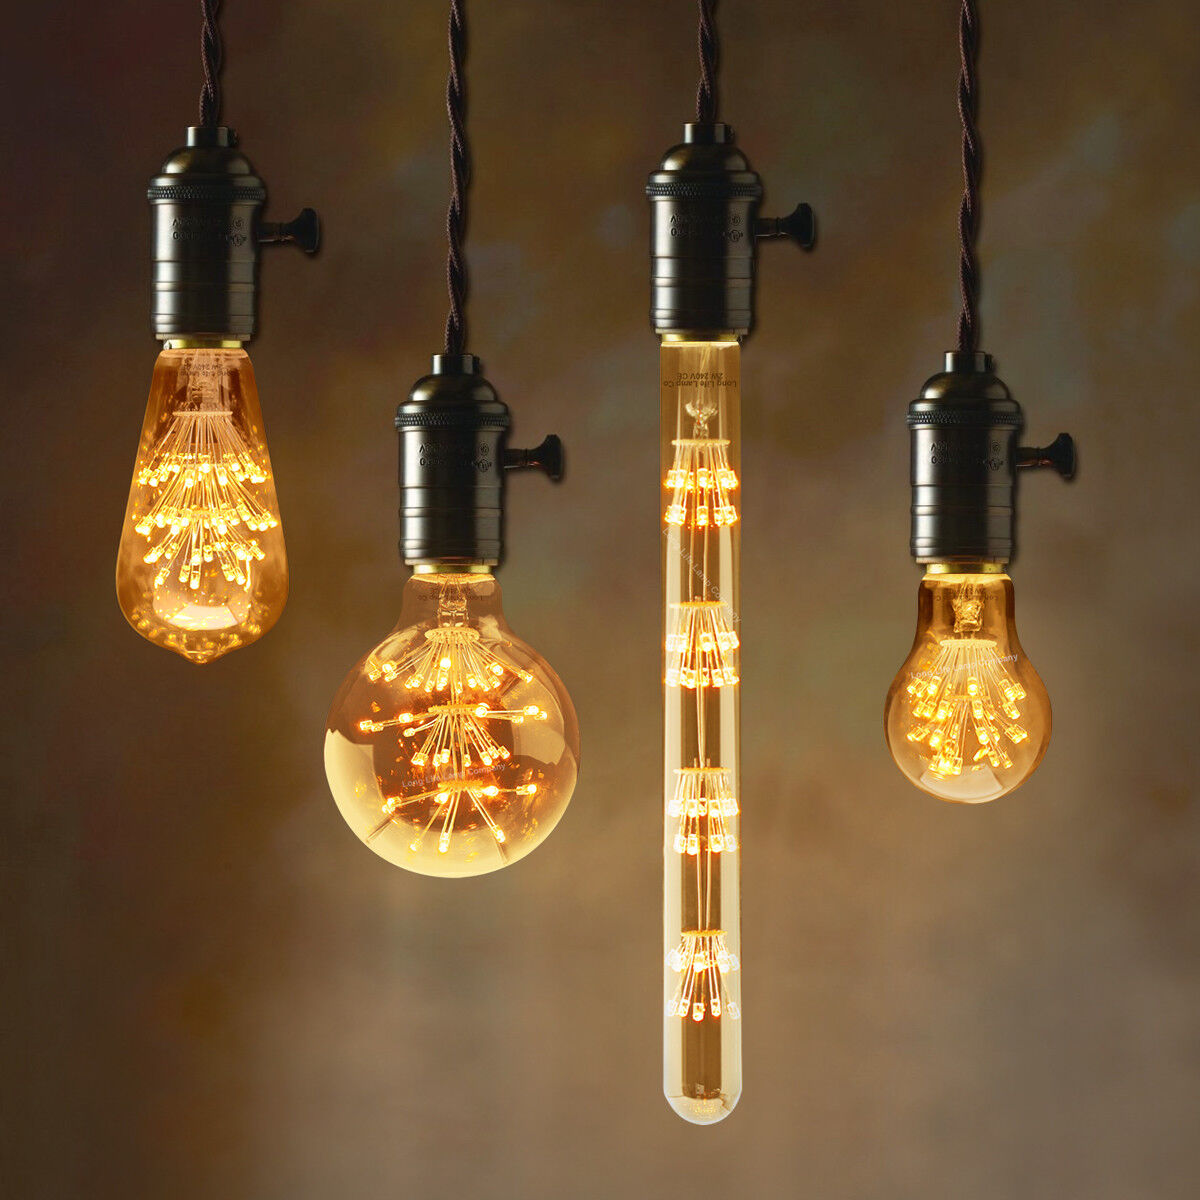 lighting filament vintage edison gold shown fixture bulb shape style light bulbs with tint in old antique pipe led lamps